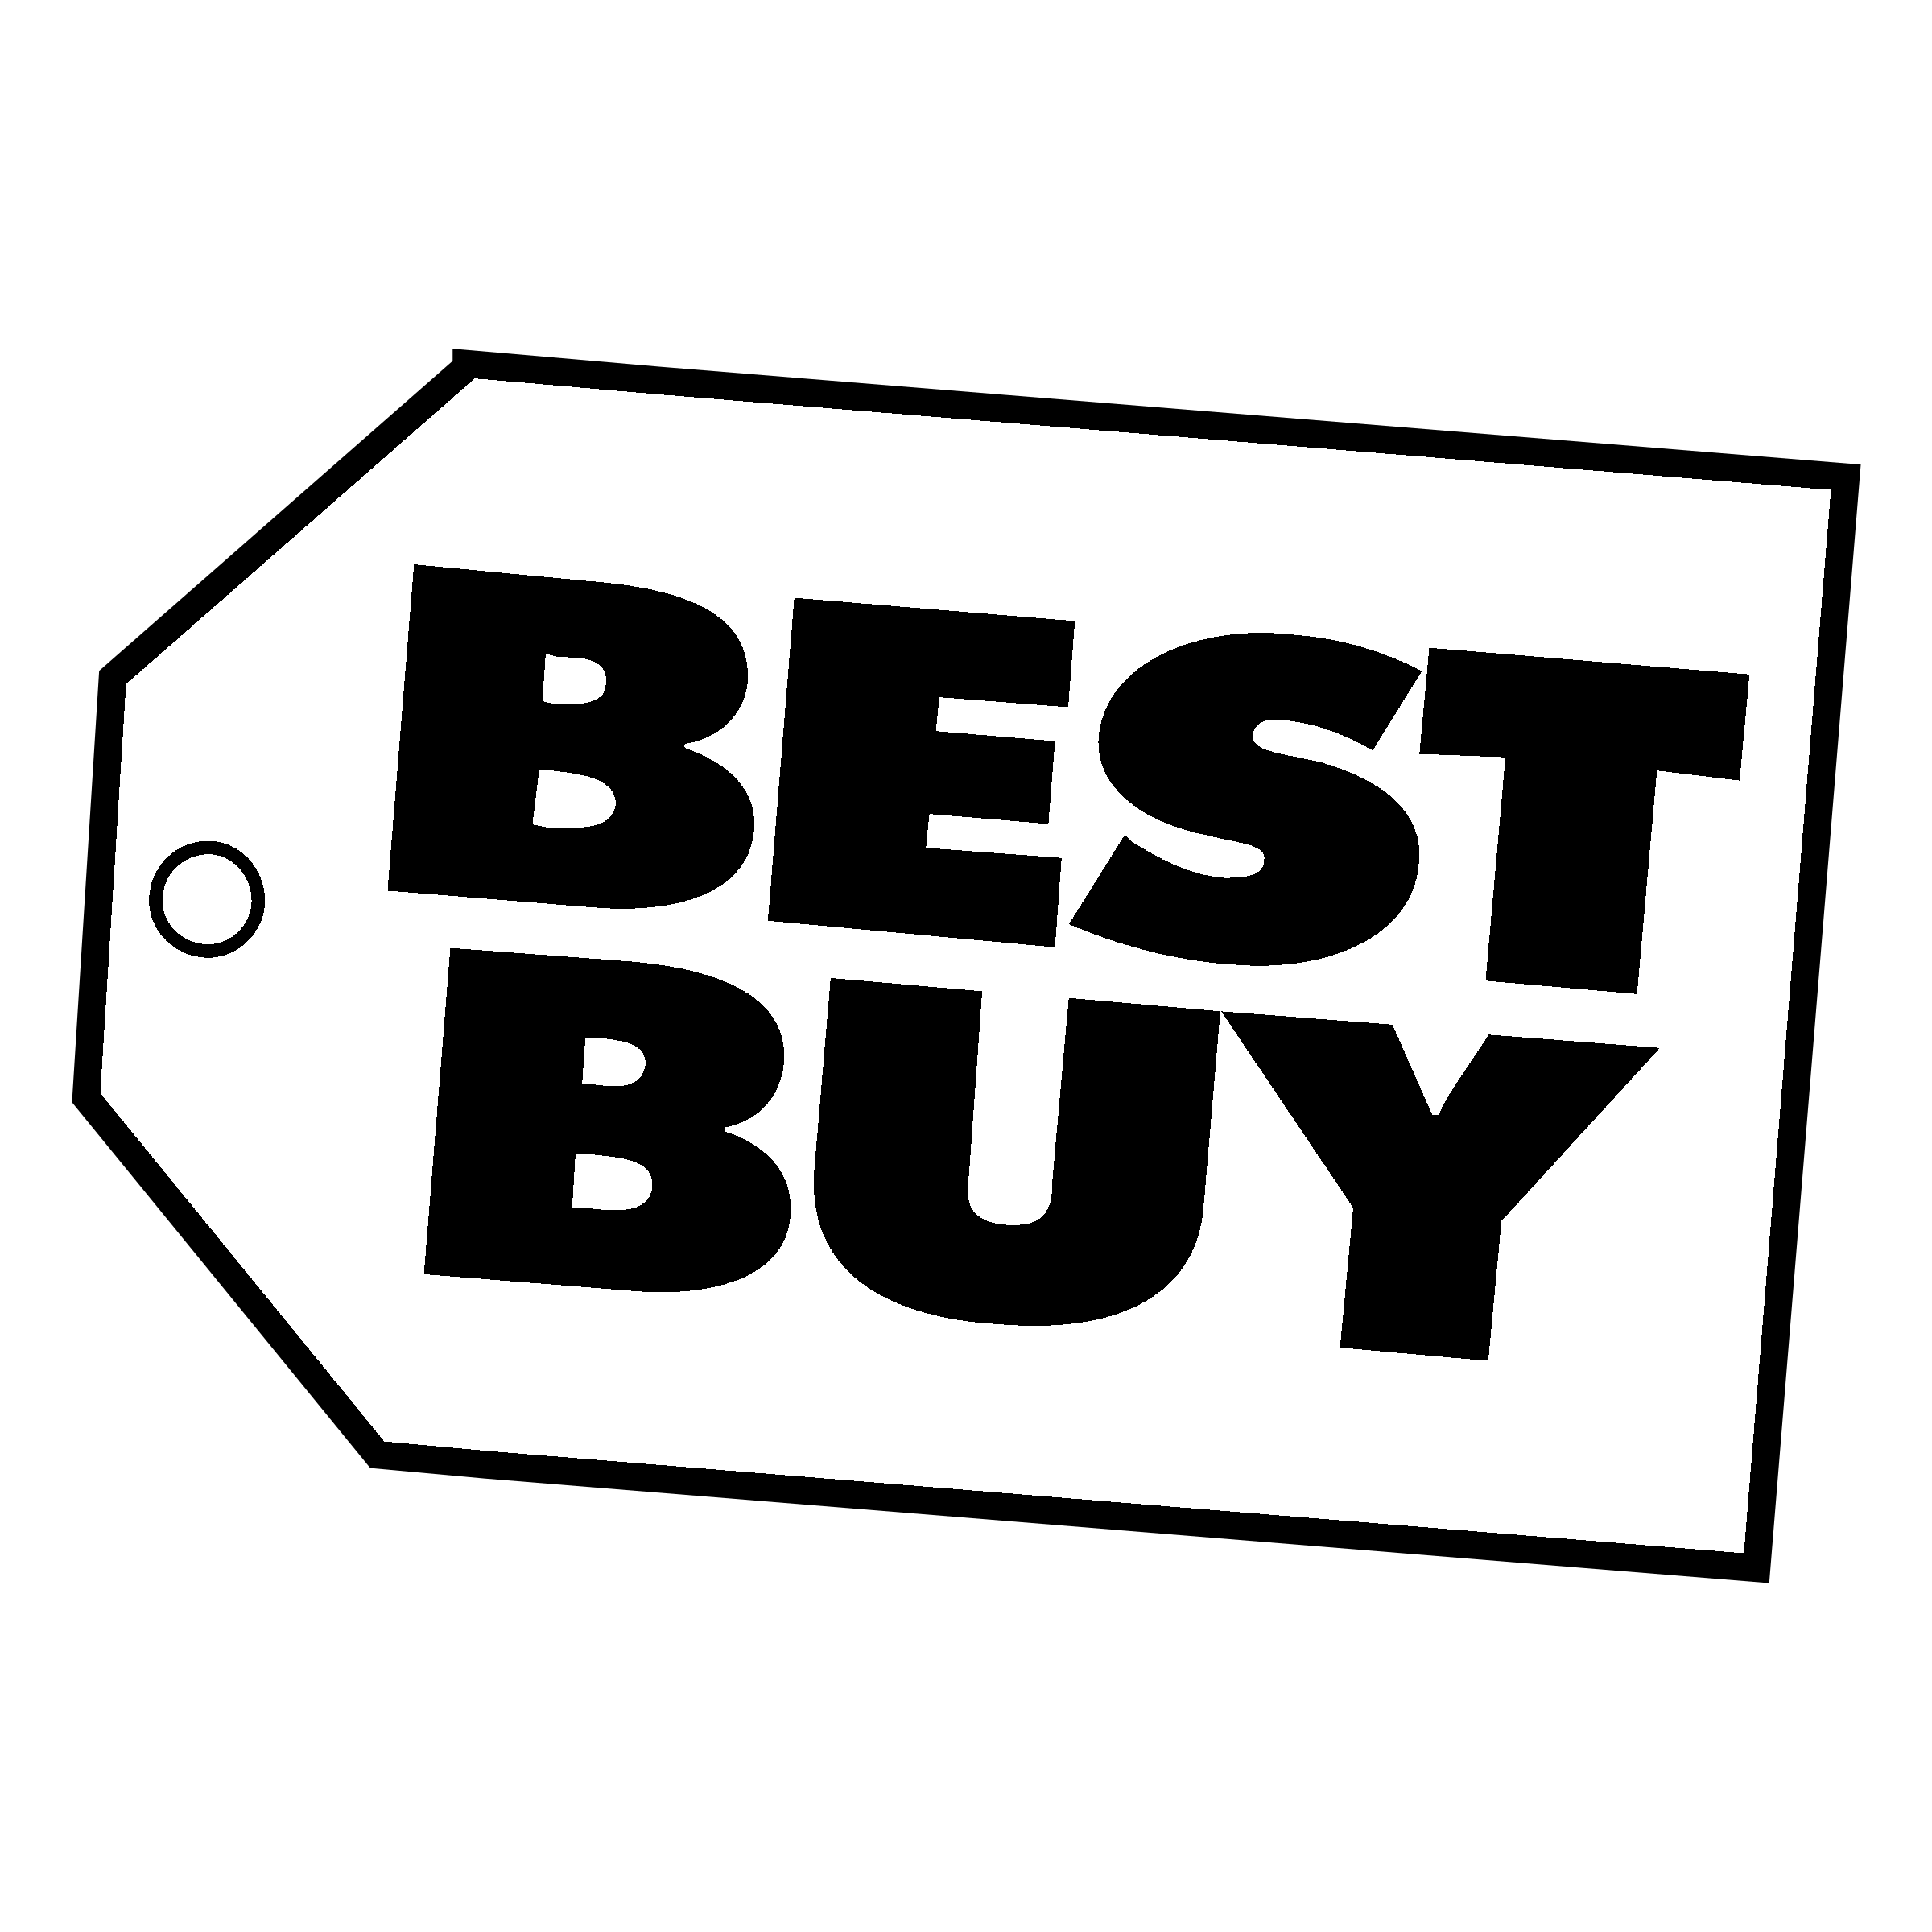 Best Buy Logo - Best Buy Logo PNG Transparent & SVG Vector - Freebie Supply